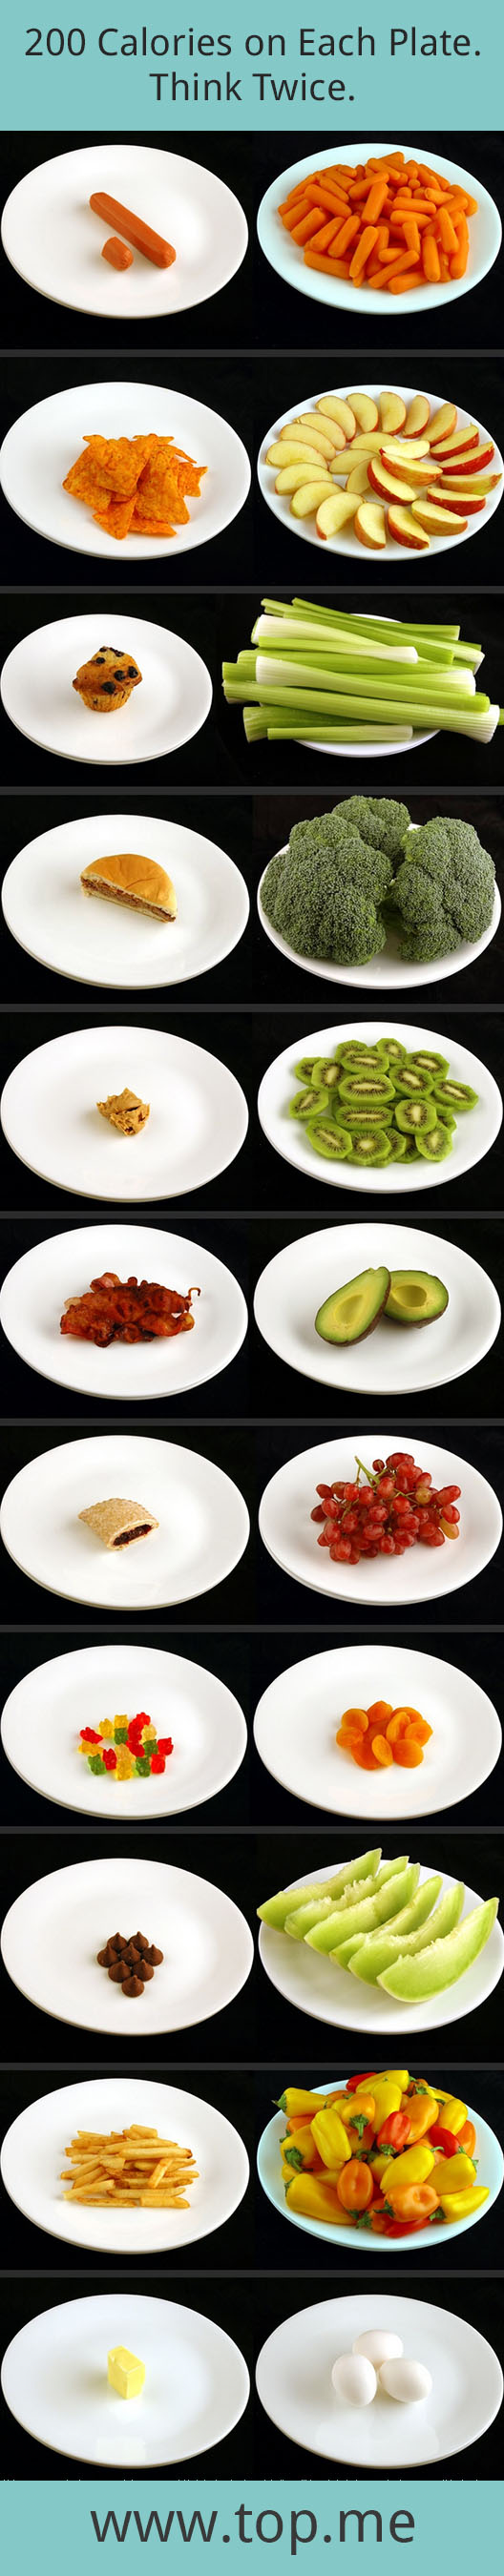 200 Calories on Each Plate. What Do You Choose?